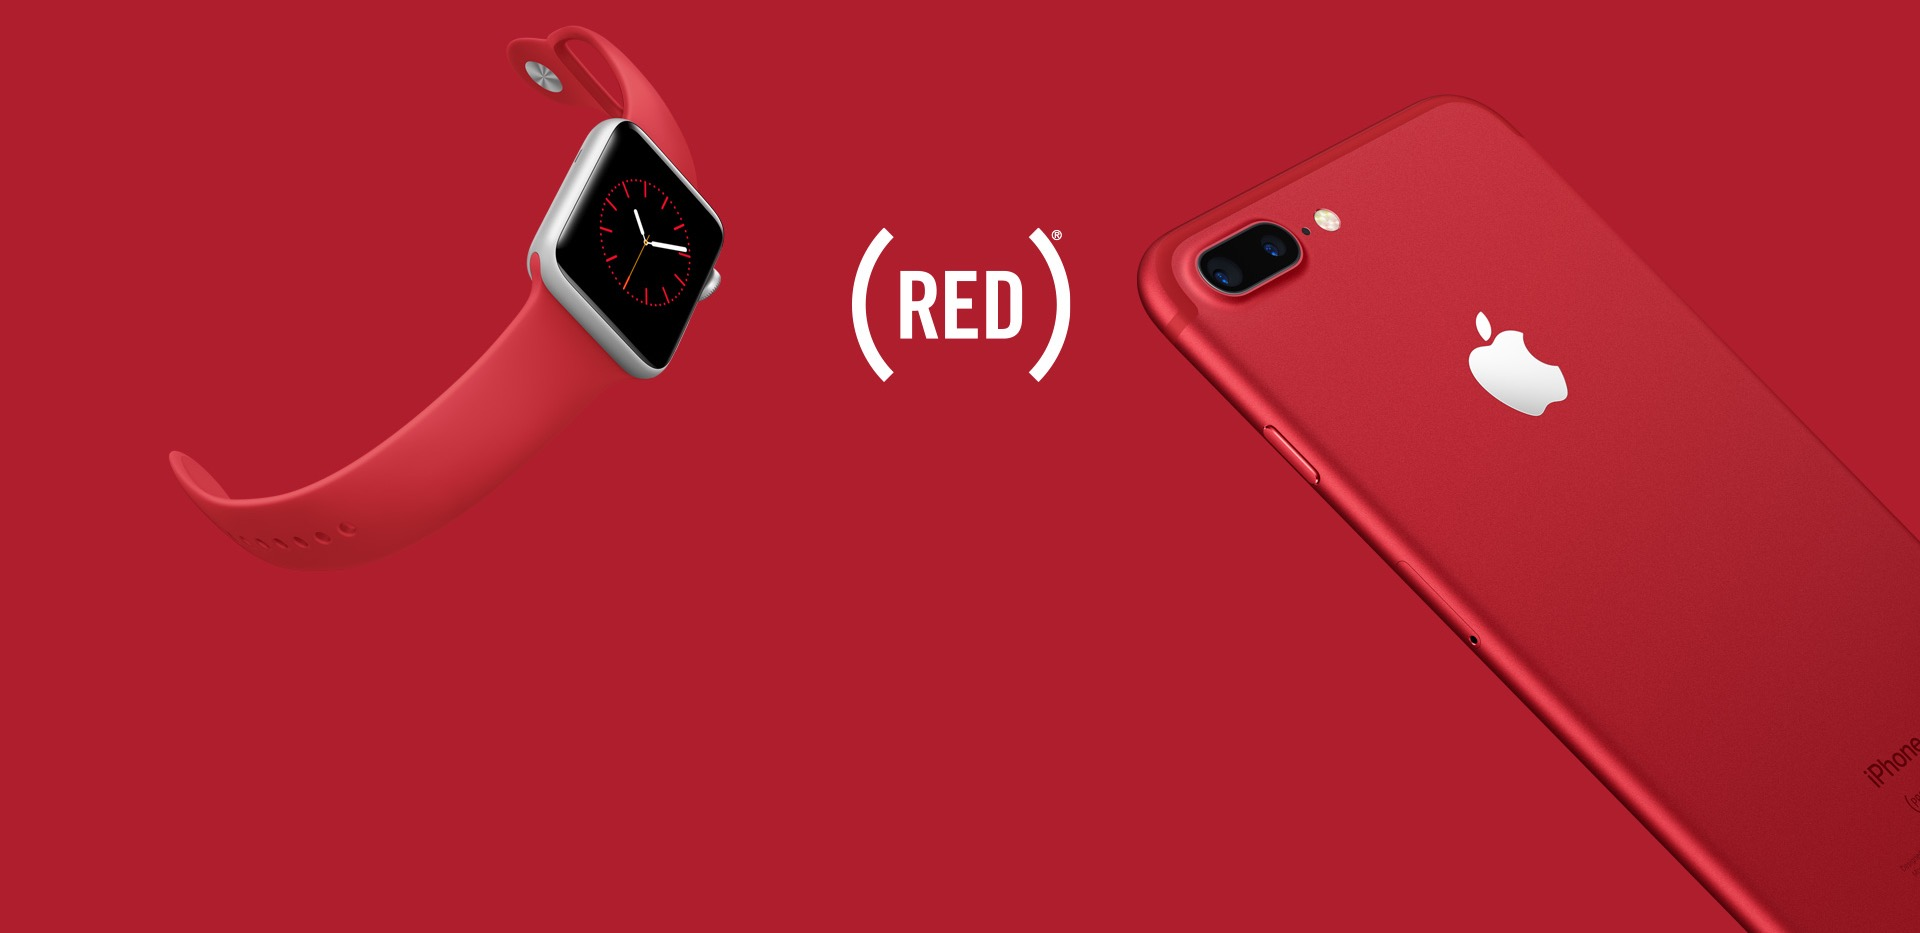 Apple PRODUCT RED iPhone Apple Watch